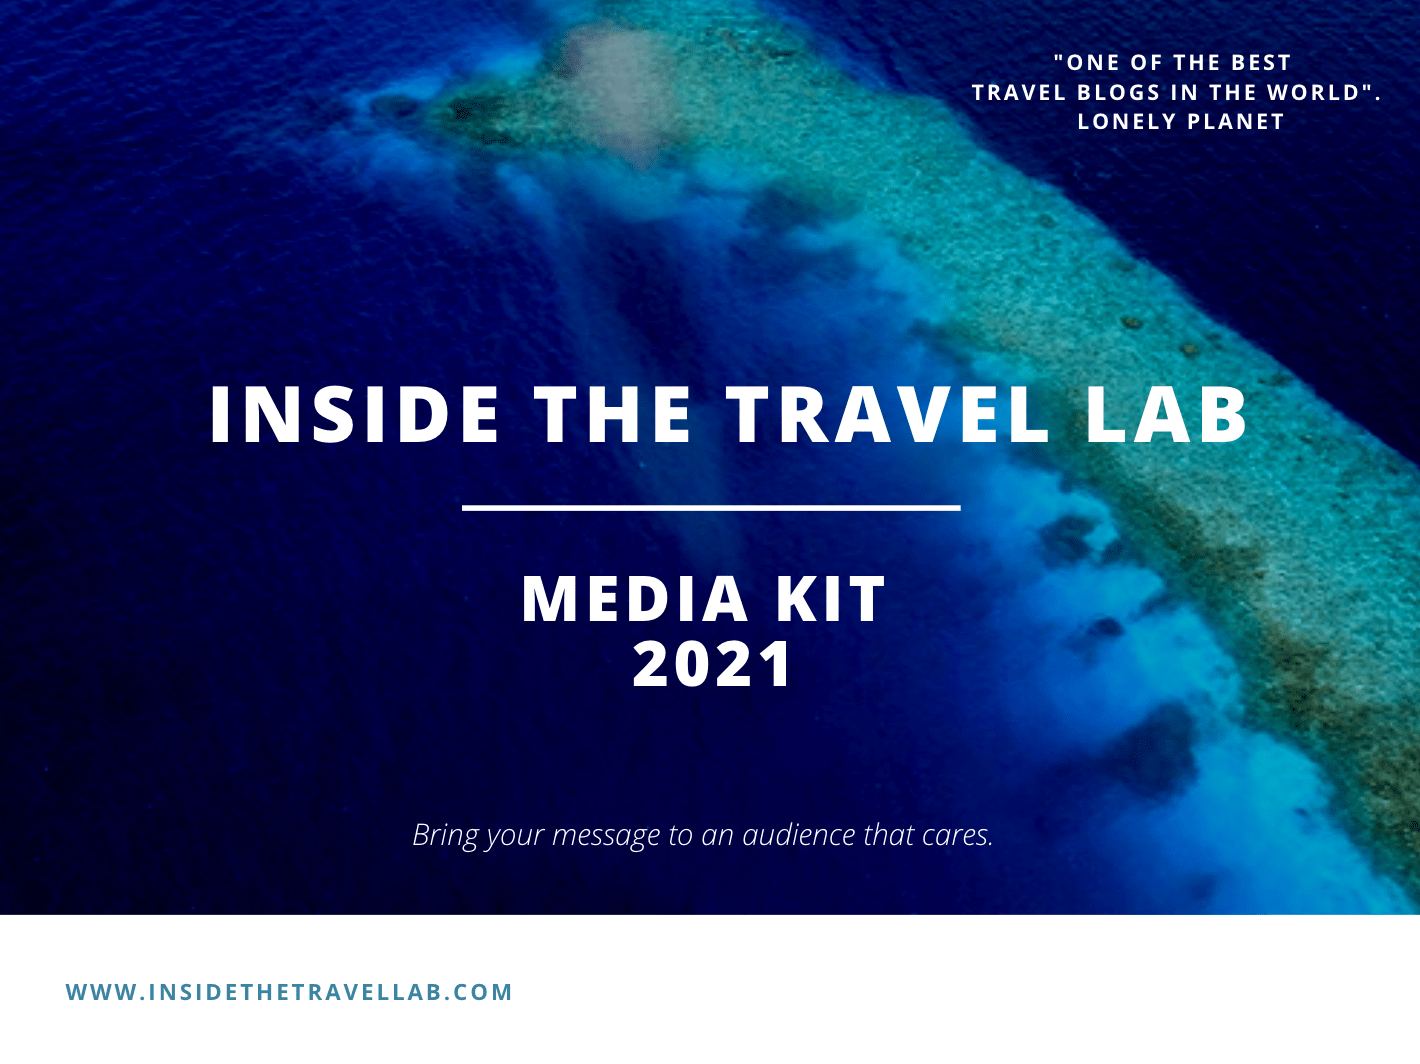 Cover Image Media Kit 2021